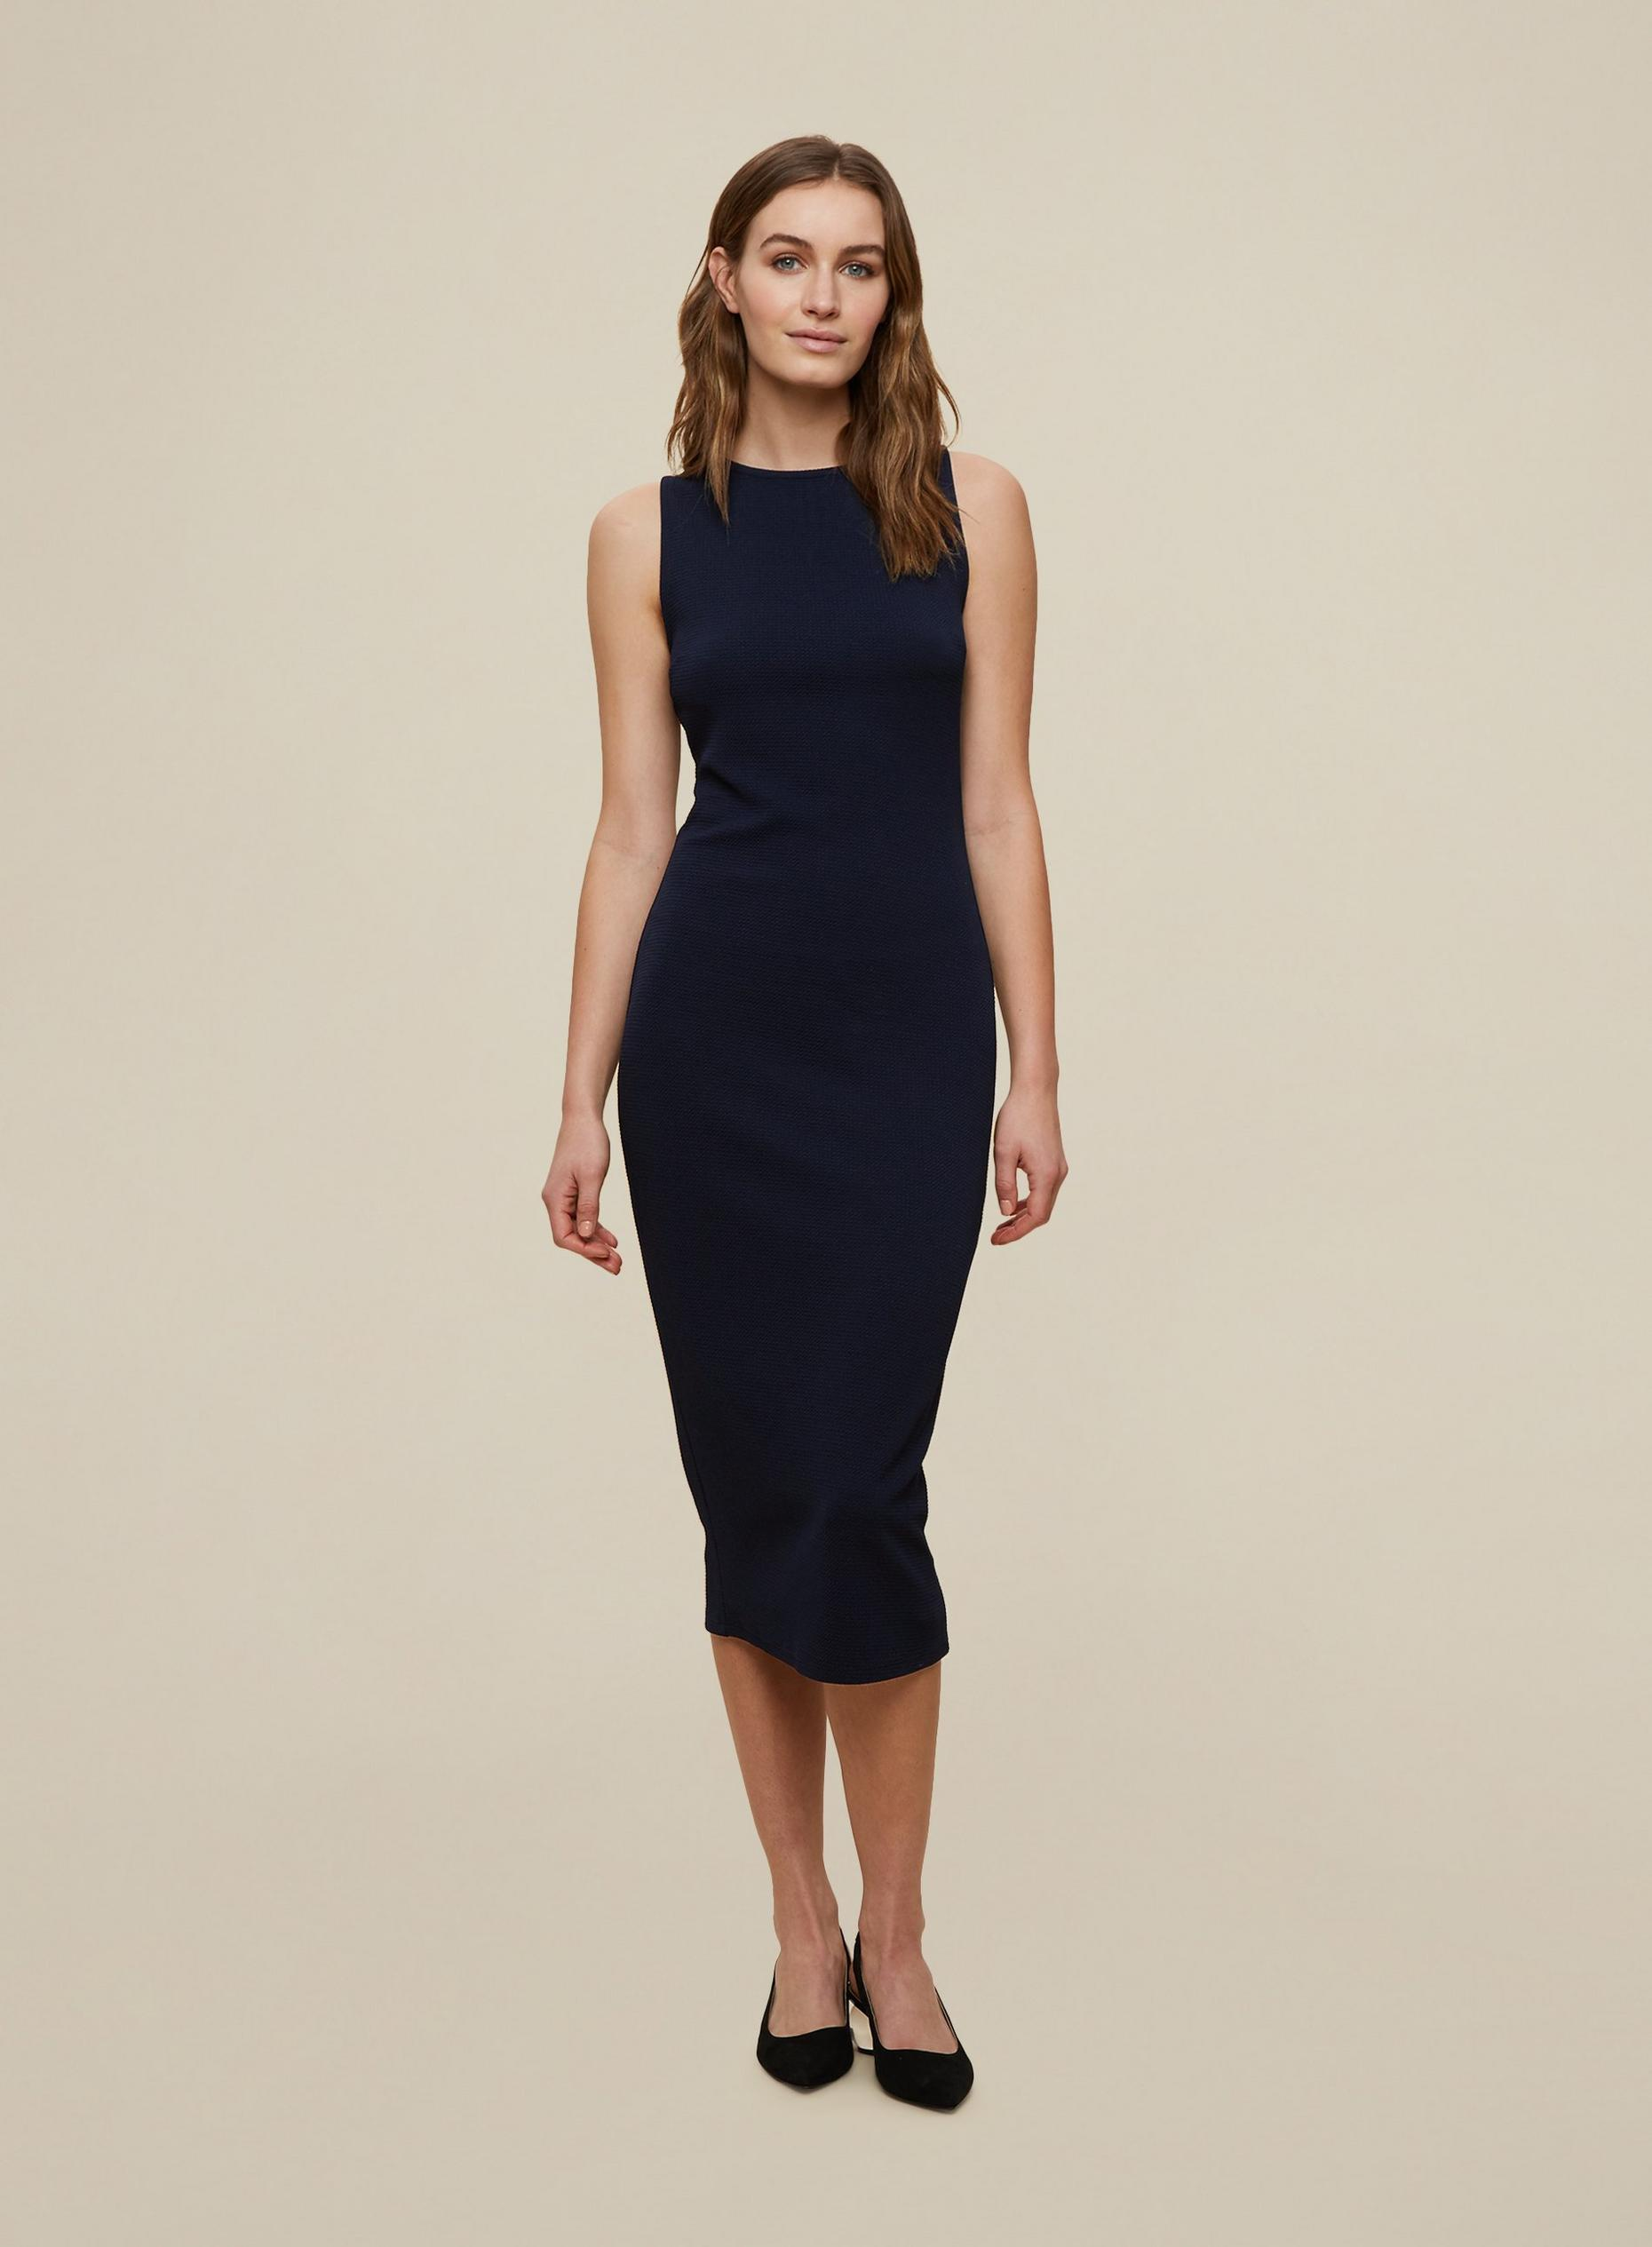 Navy Sleeveless Bodycon Dress